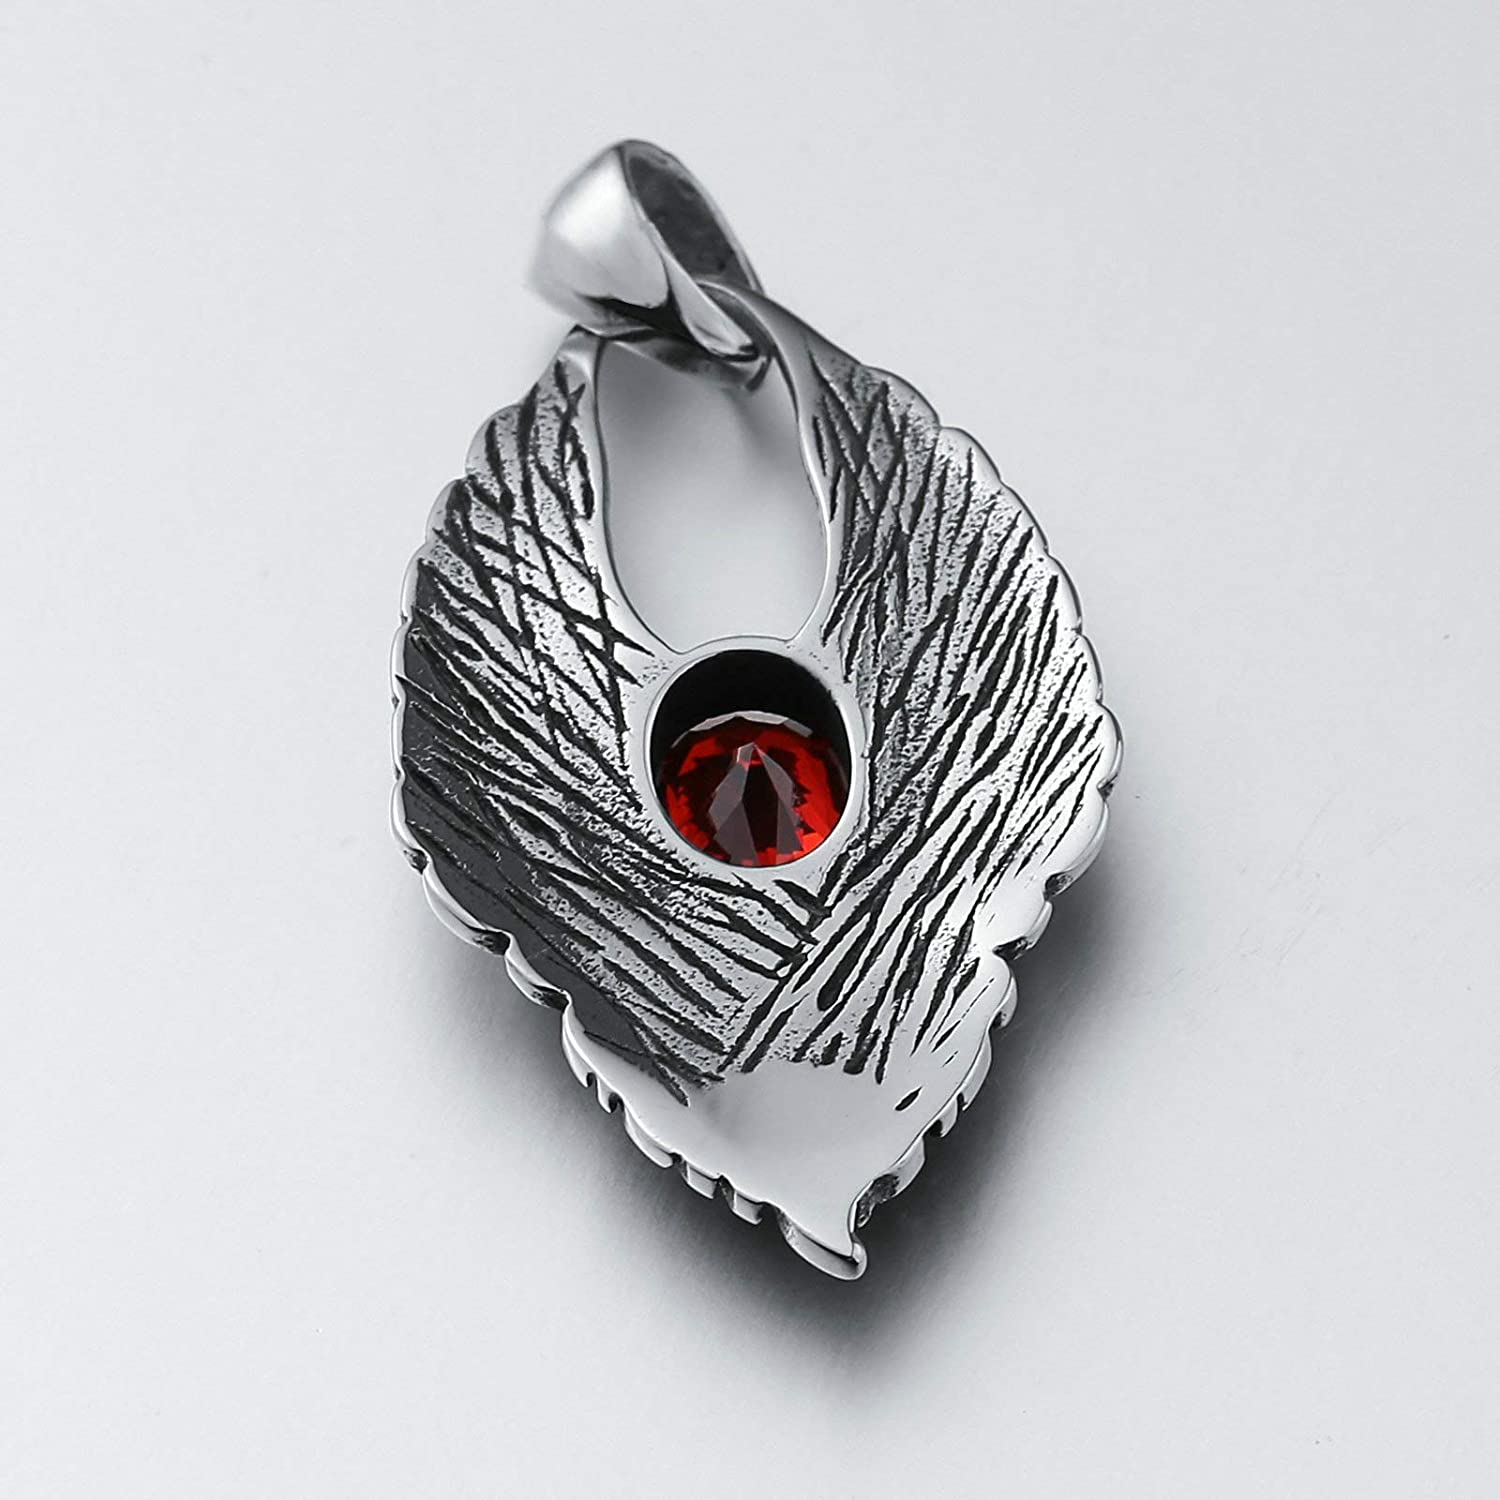 KnSam Stainless Steel Necklace for Men Women Double Wing Radiant Shape Stainless Steel Pendant Necklace